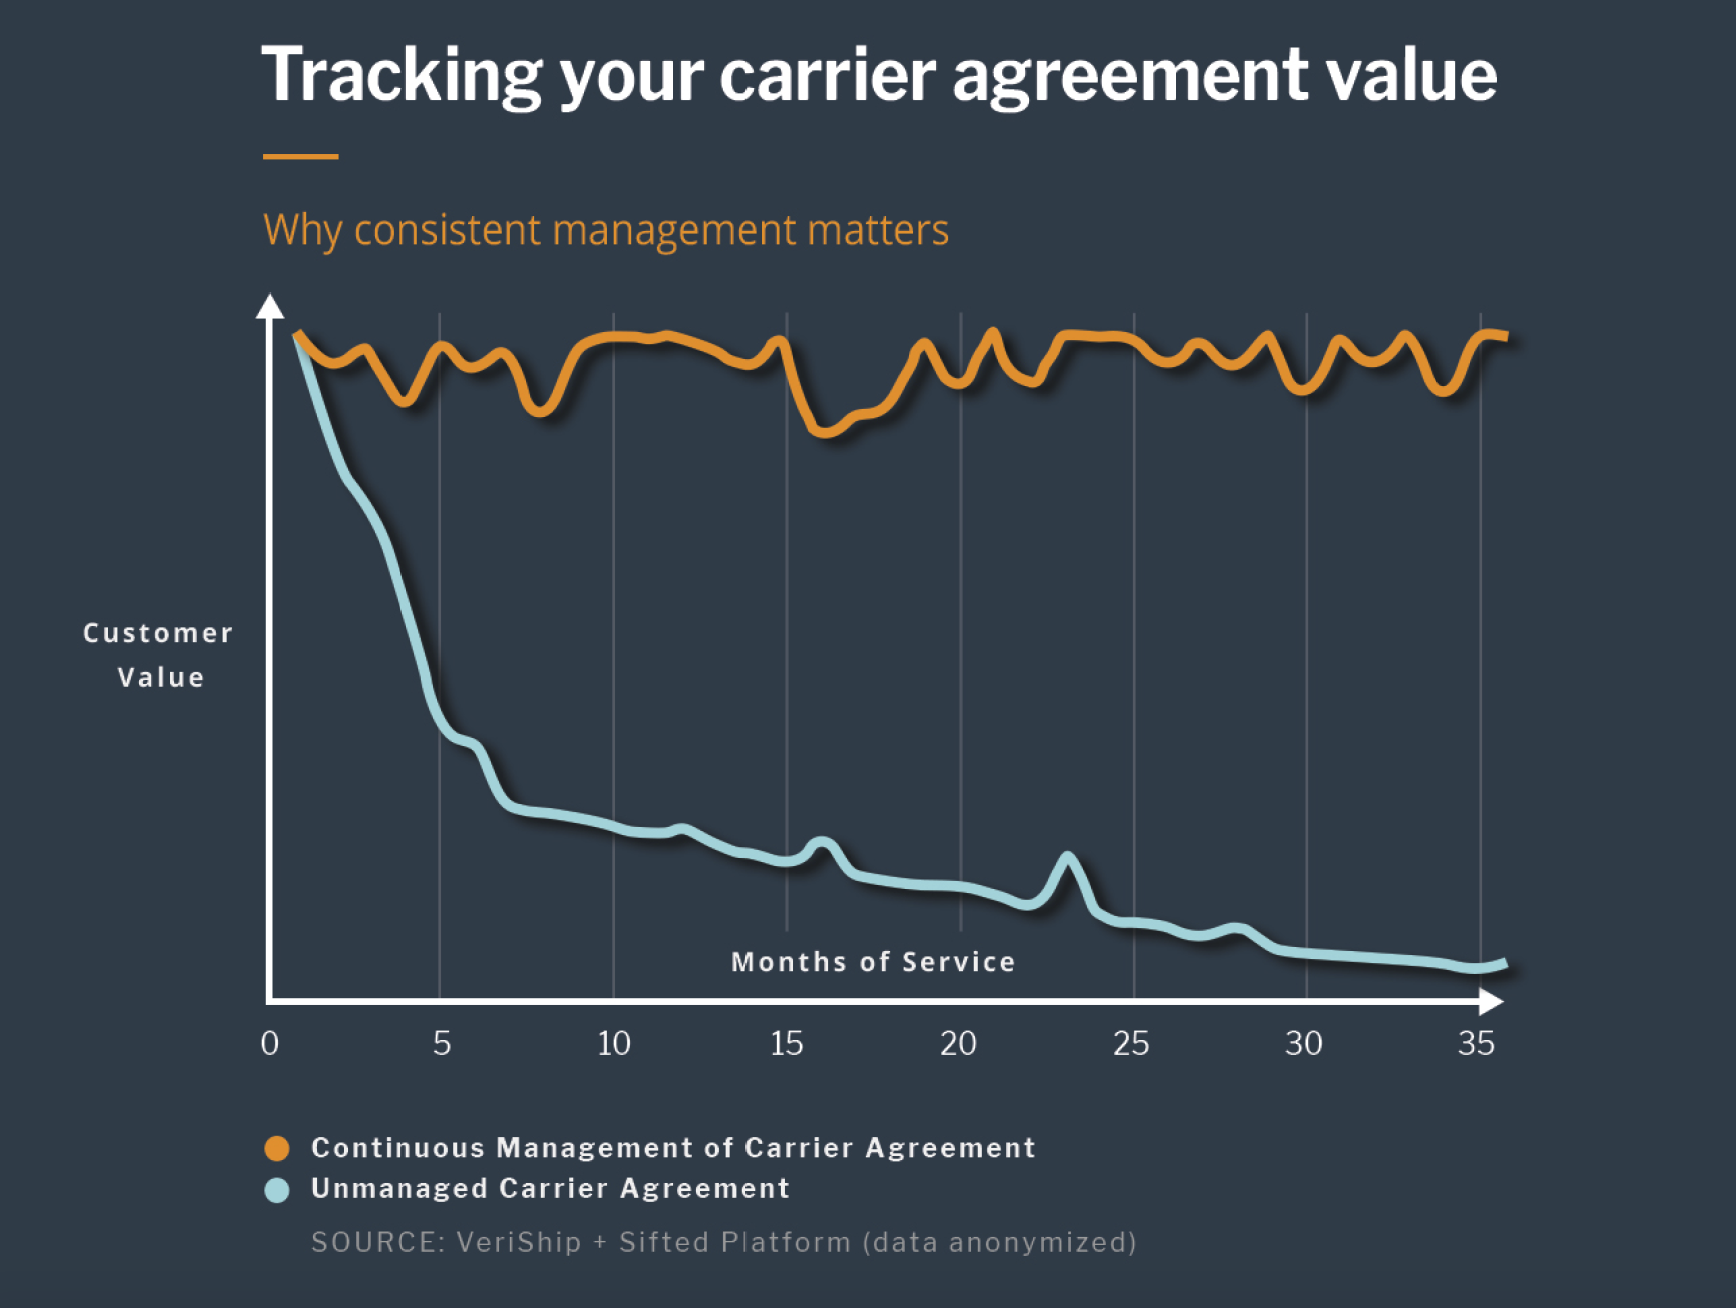 Tracking your carrier agreement value